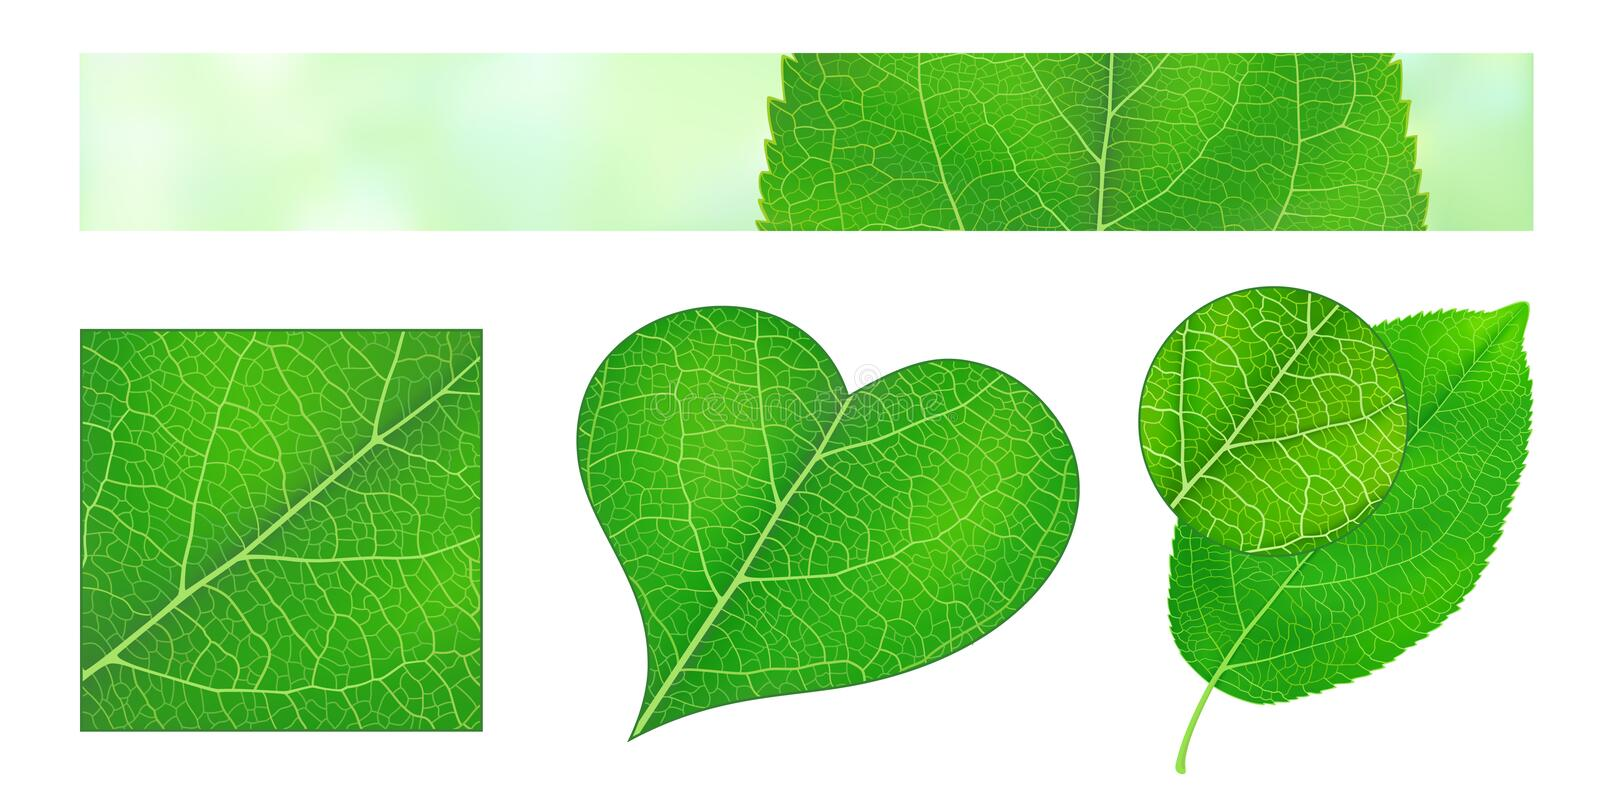 Design elements with green leaf texture stock illustration